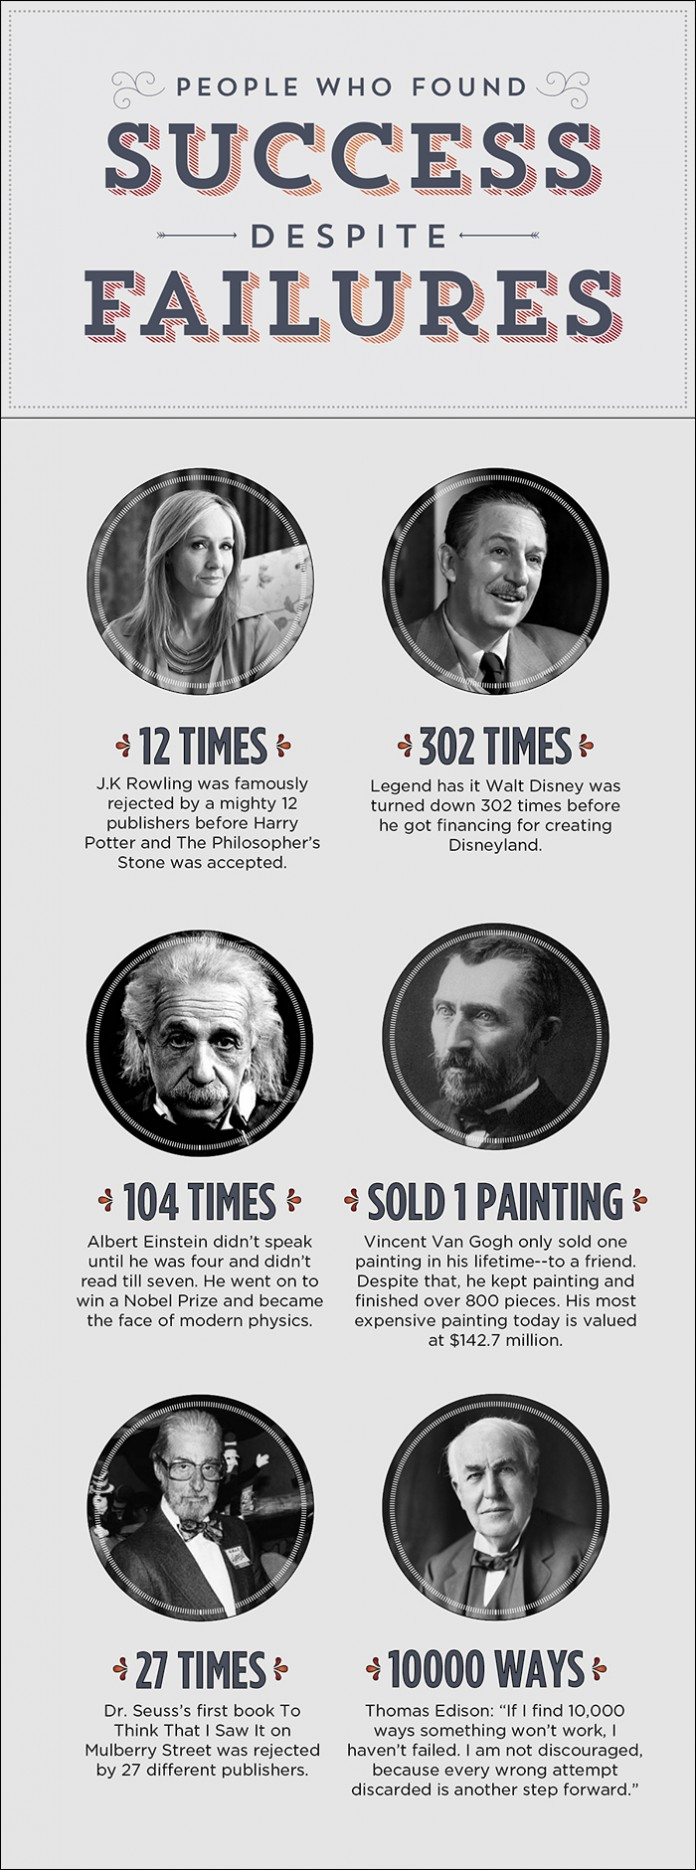 history of successful men A list of the ten most successful businessmen of all time includes some of history's most industrious workers and innovative entrepreneurs in most cases, these men invented entire industries and changed the course of history.